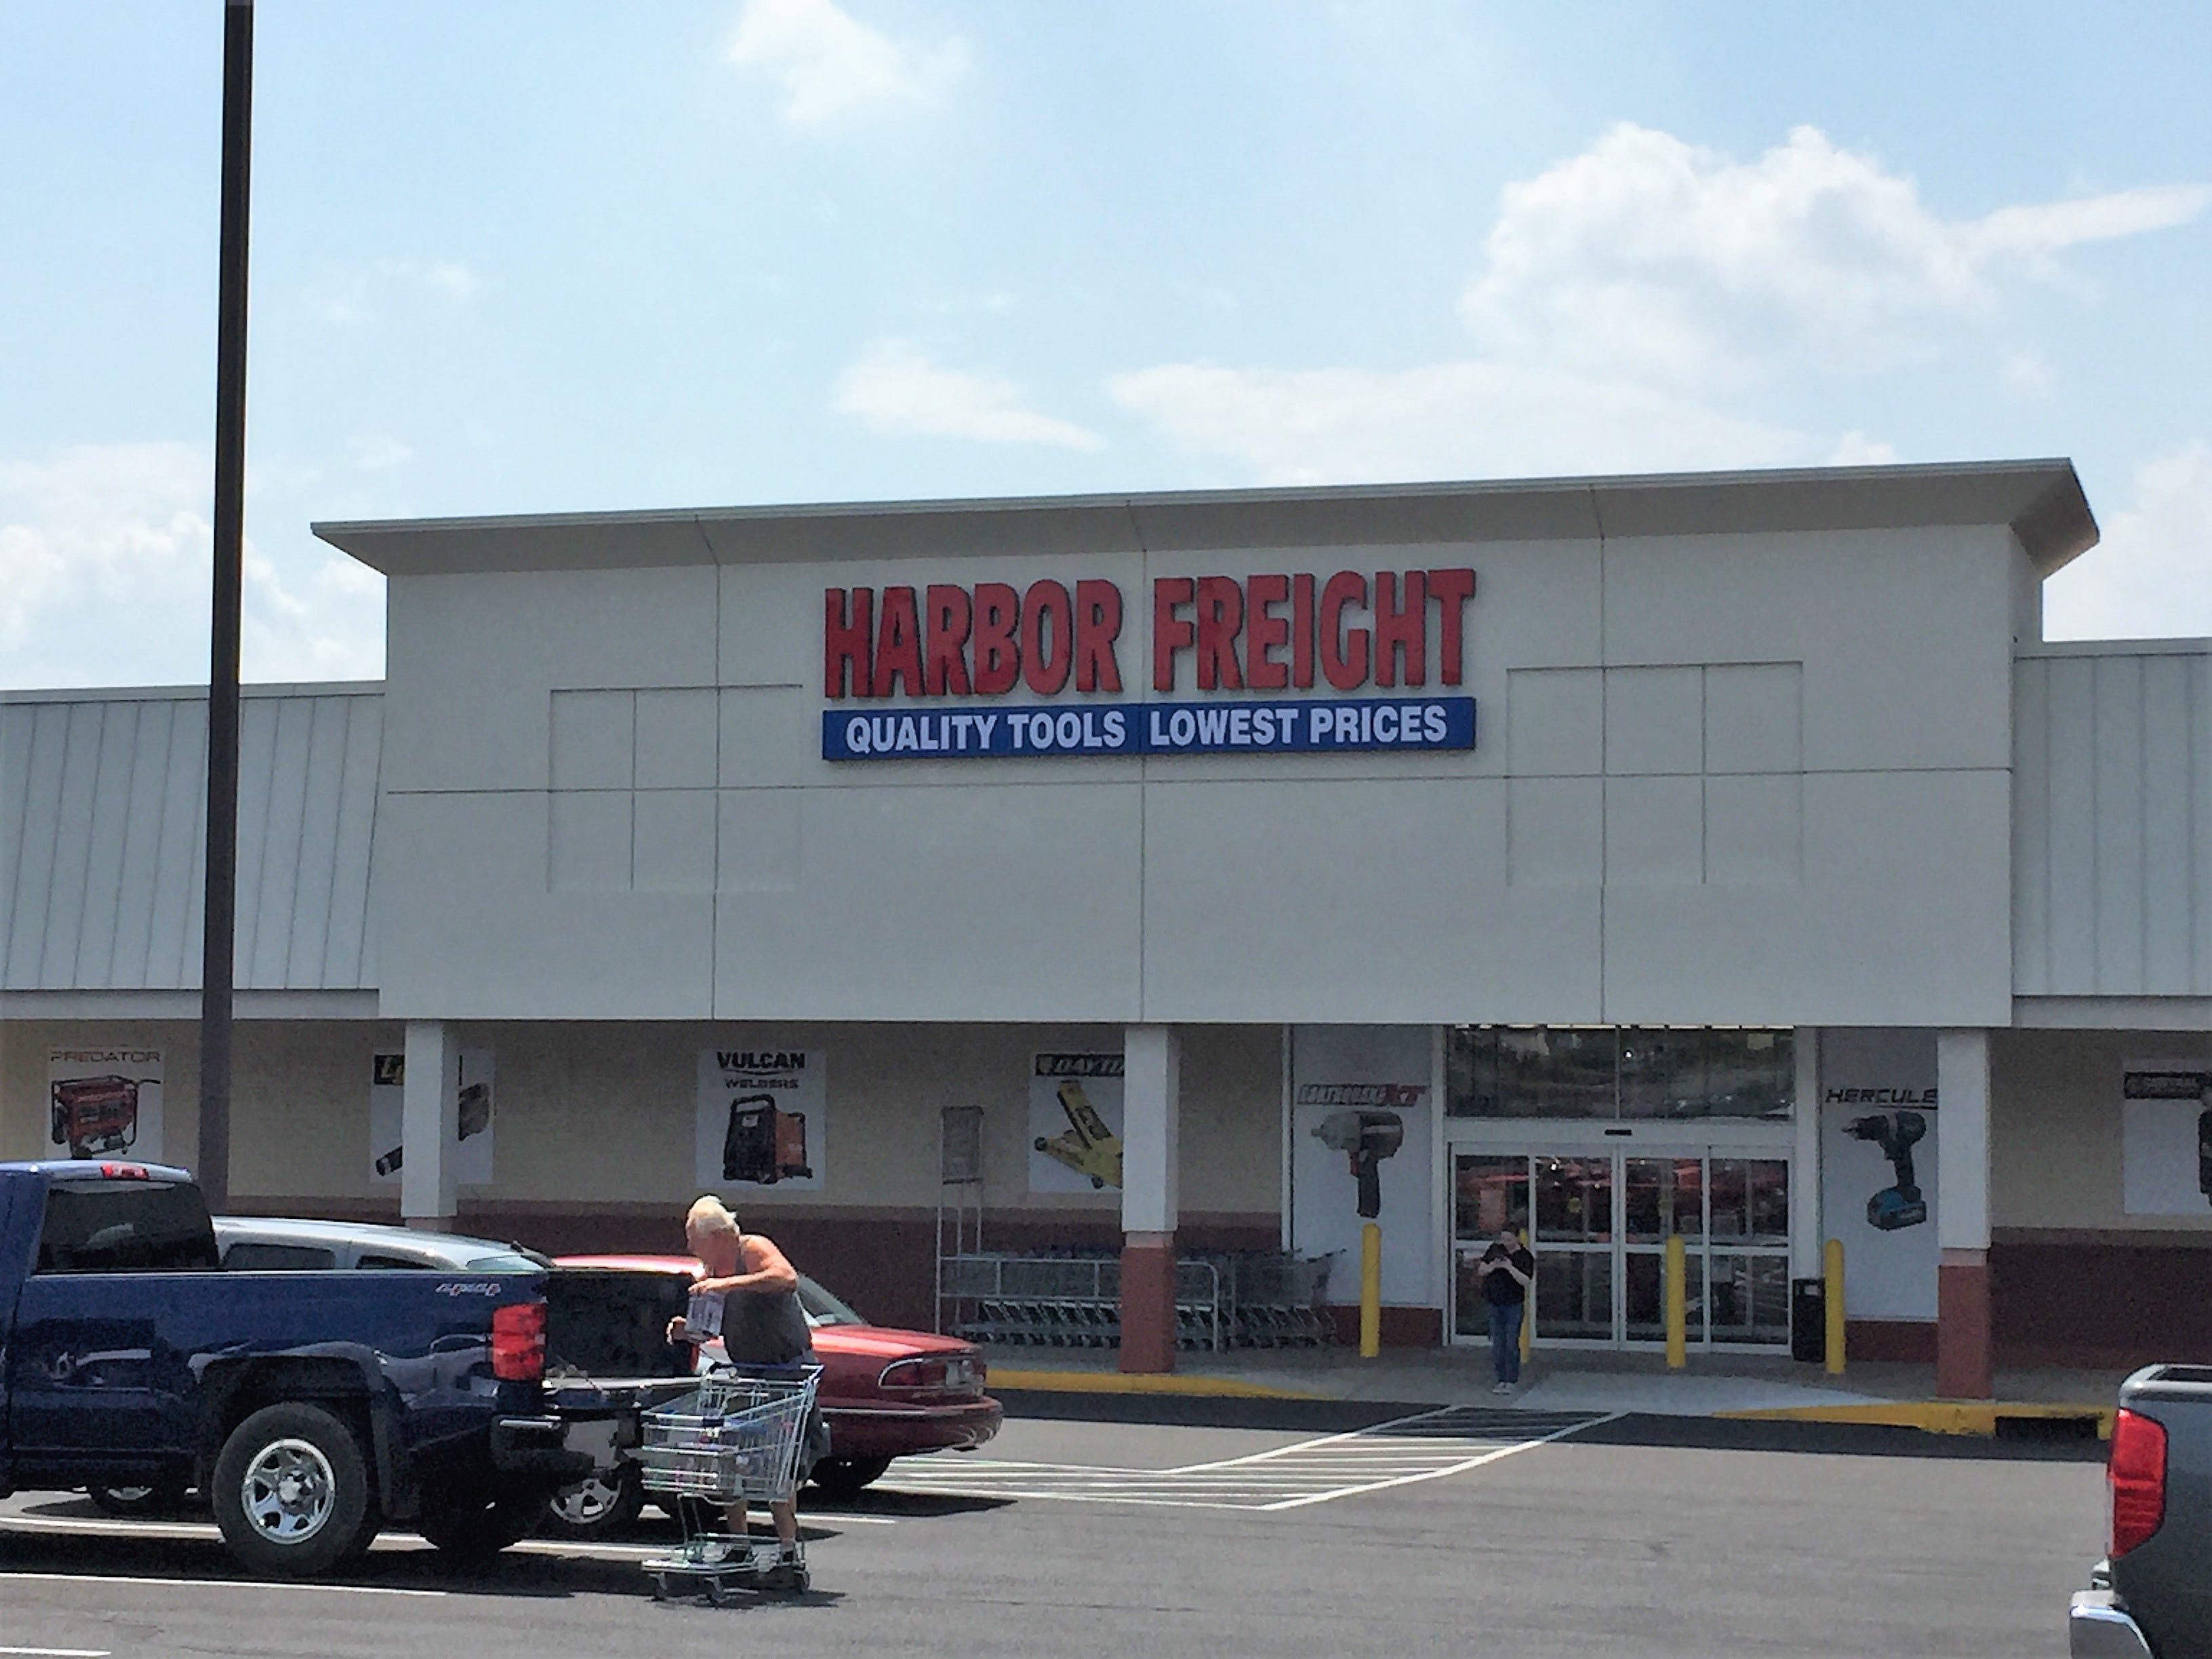 Now open, the discount hardware chain has been an immediate hit at the Lebanon Plaza. With its insane low prices on tools, people are flocking to Harbor Freight to stock their garages and sheds. Harbor Freight cuts out the middle man and stamps its name on its own line of quality tools.